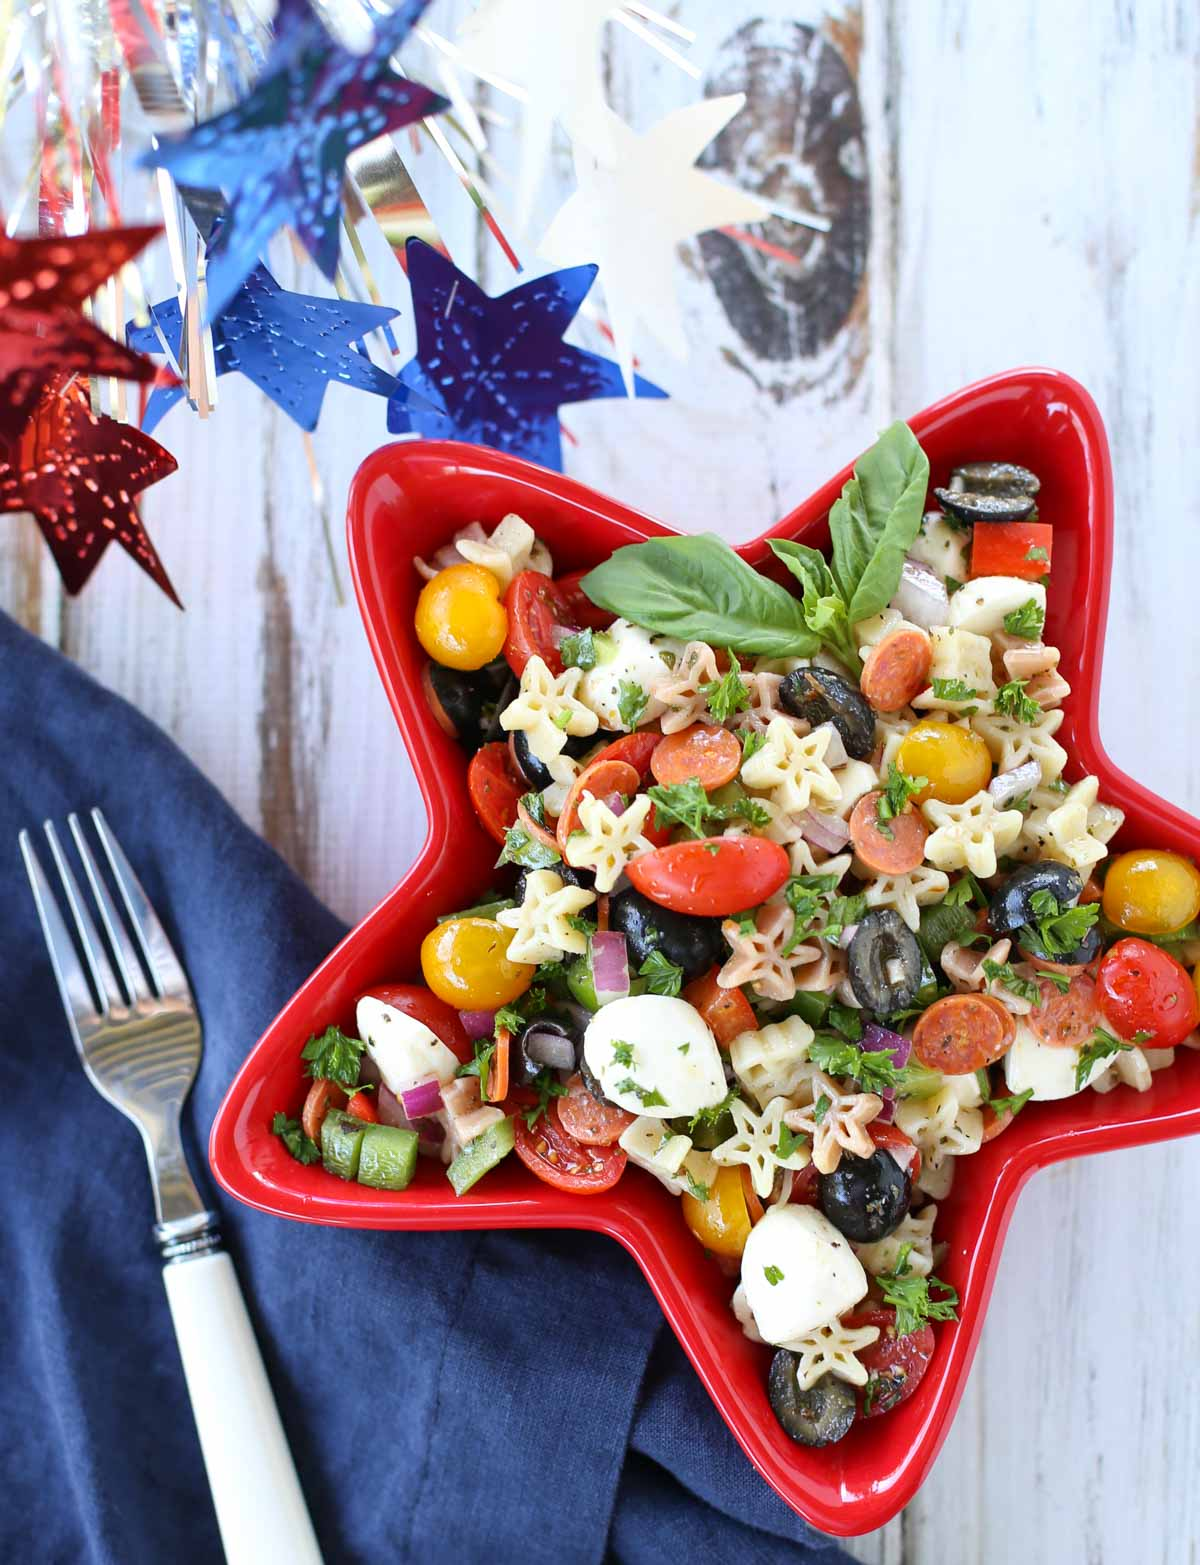 Supreme Pizza Pasta Salad | Delish combo of your favorite pizza ingredients! A simple side dish to any summer menu. Yum! The vinaigrette dressing ties it all together! | WorldofPastabilities.com